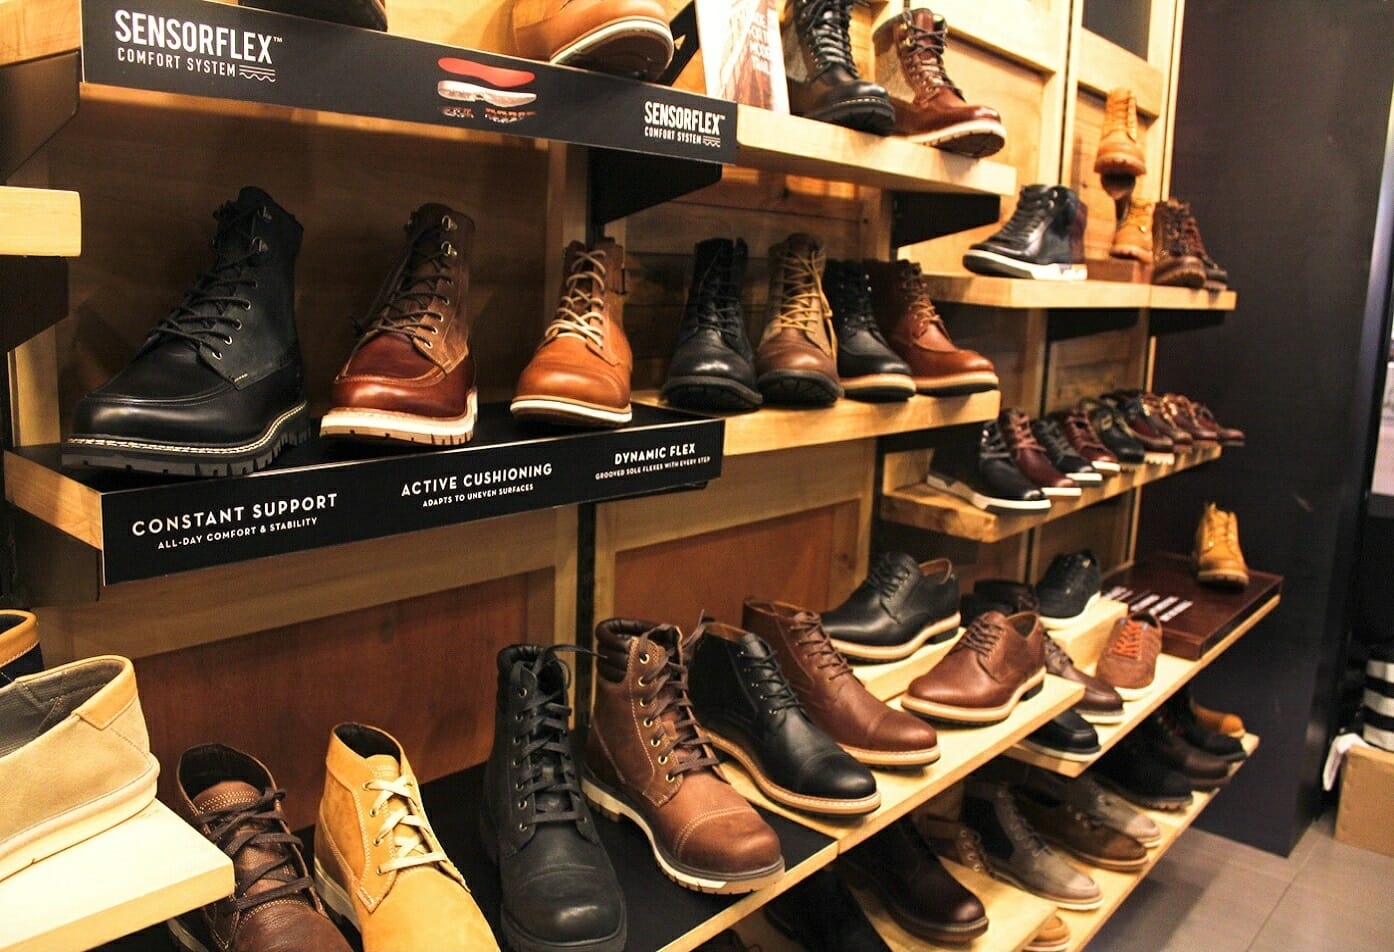 Take your pick from a selection of amazing shoes!